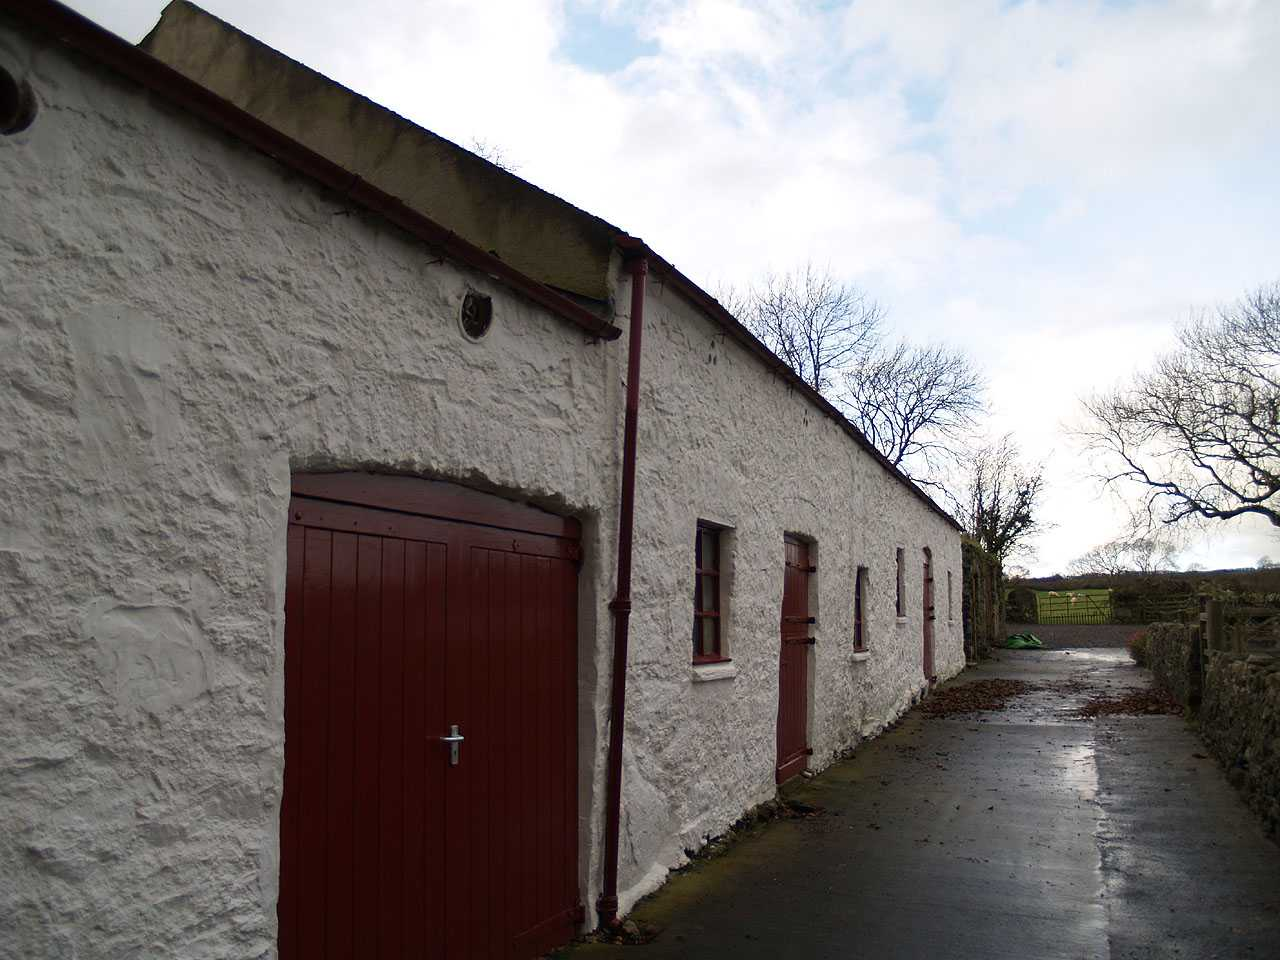 Anglesey, Llangefni Water Mill, rear view of the outbuildings